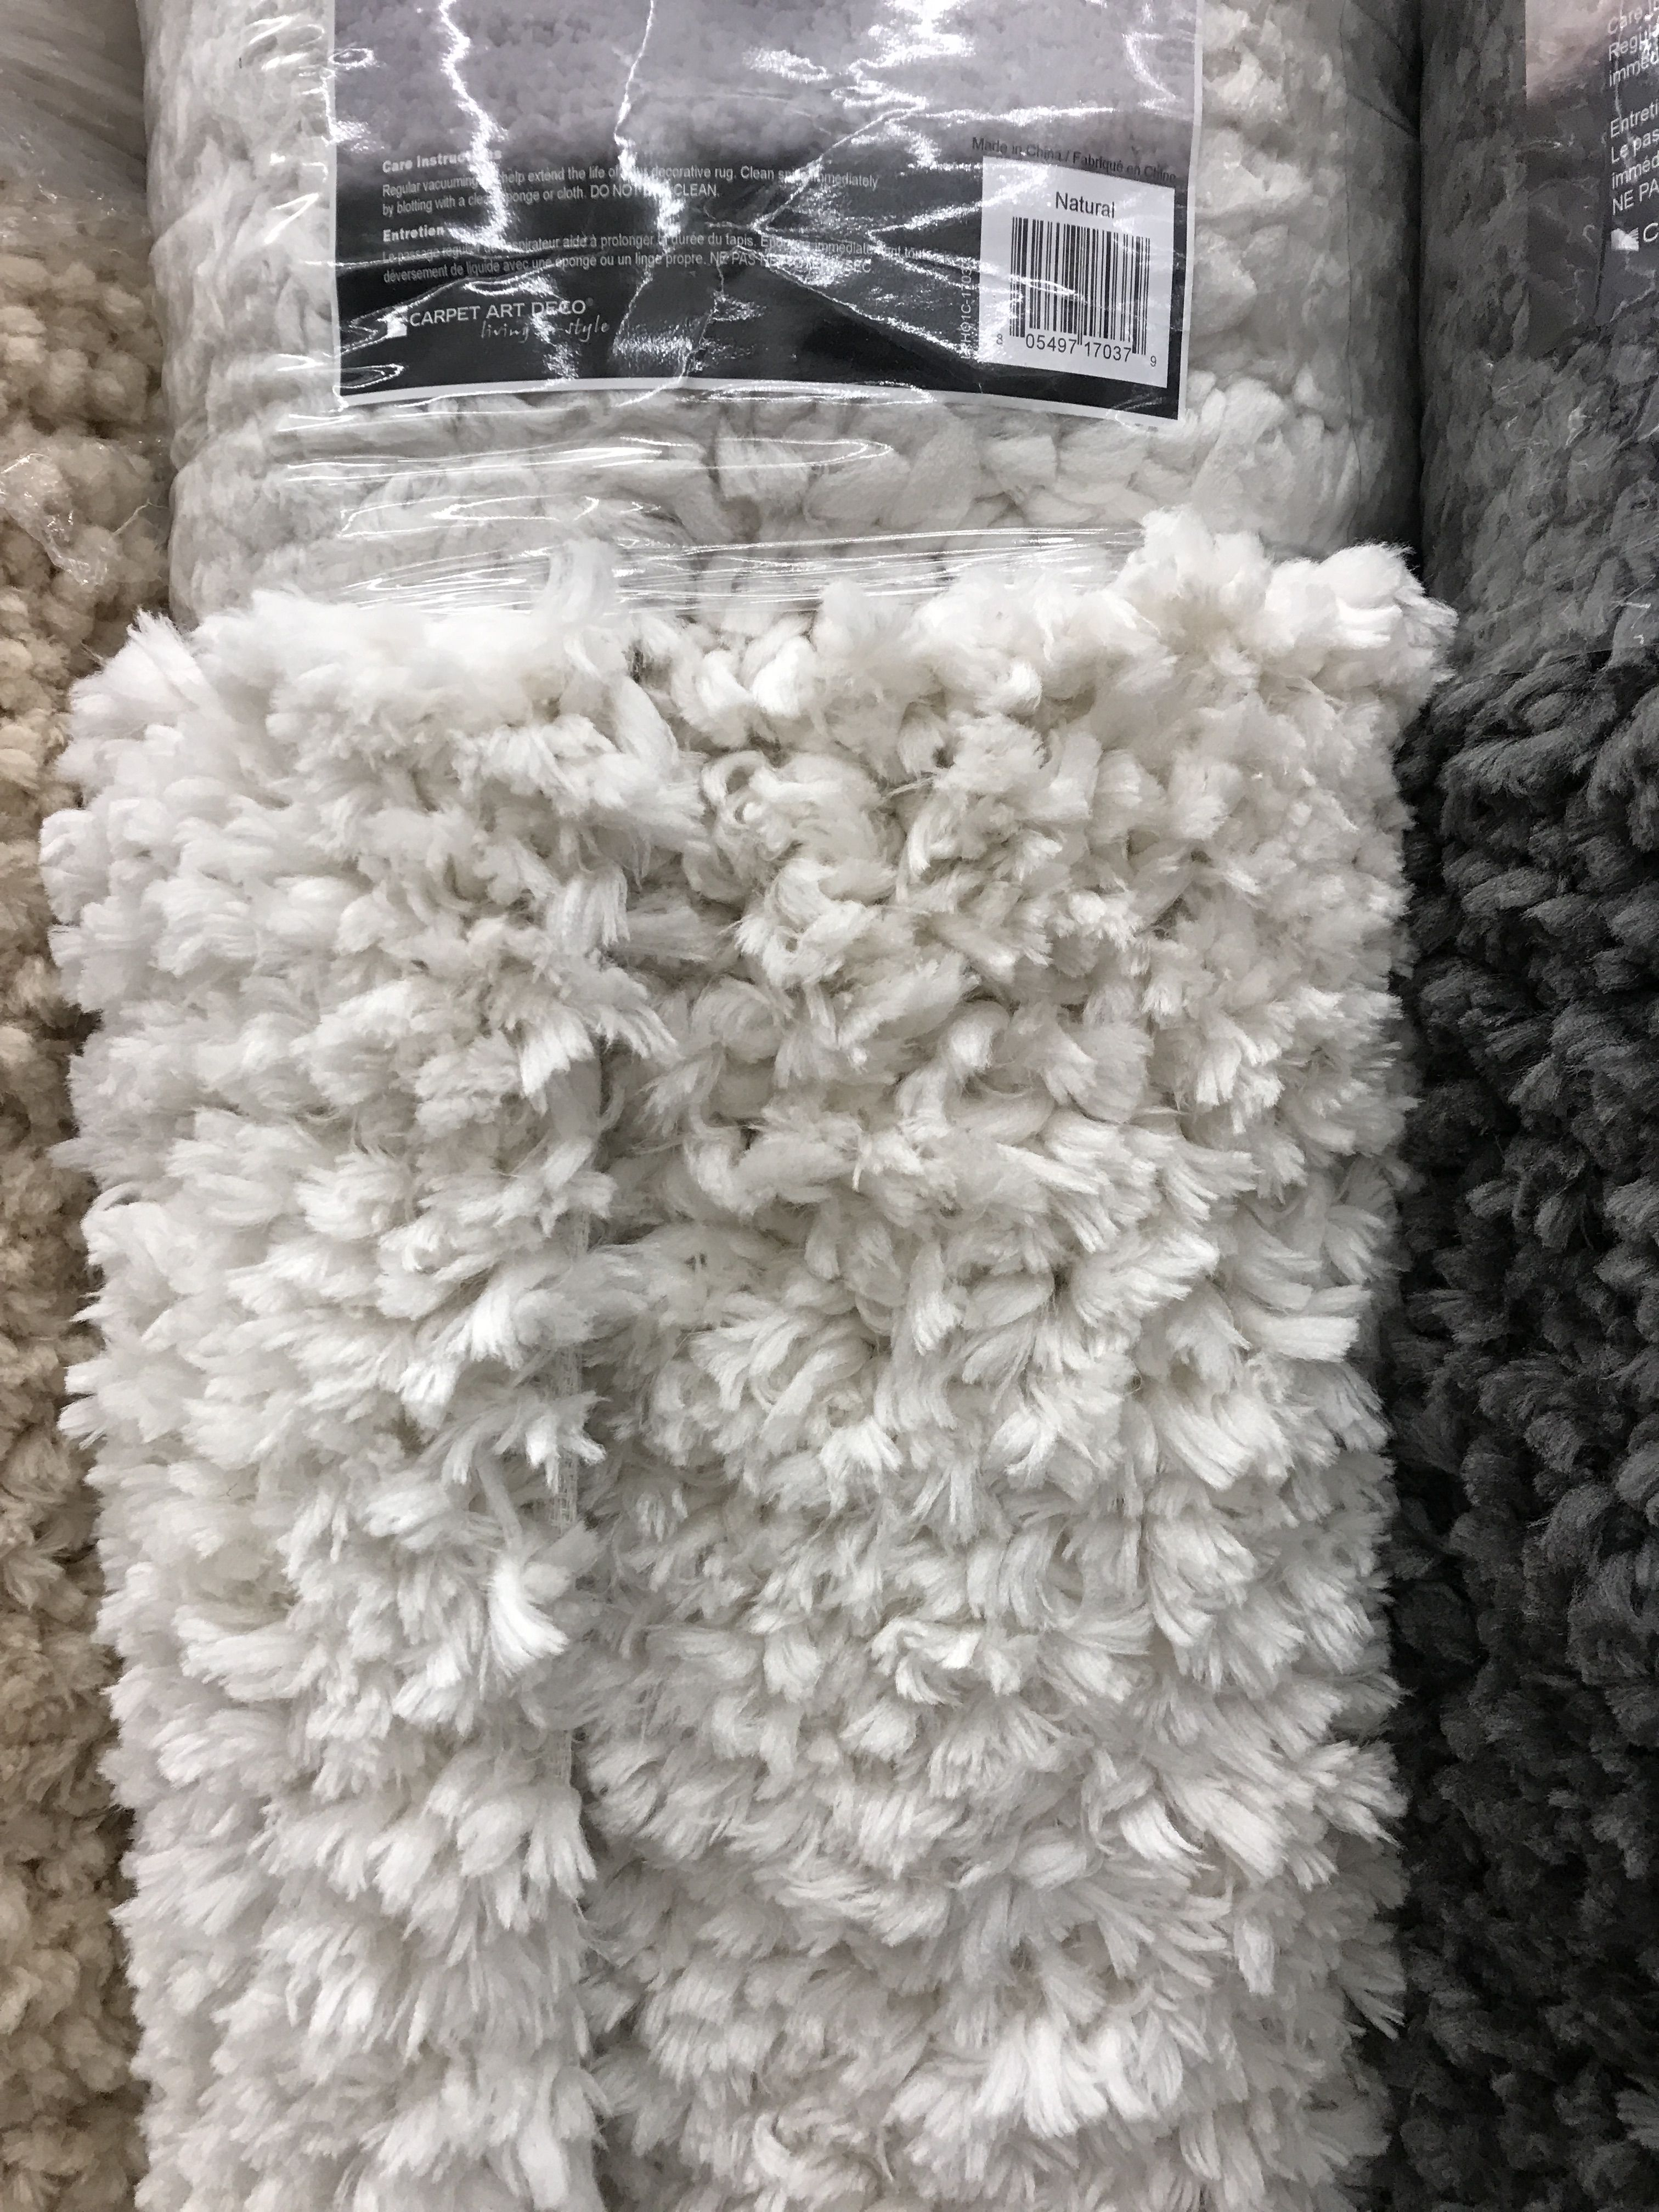 Fuzzy soft carpet for the master bedroom